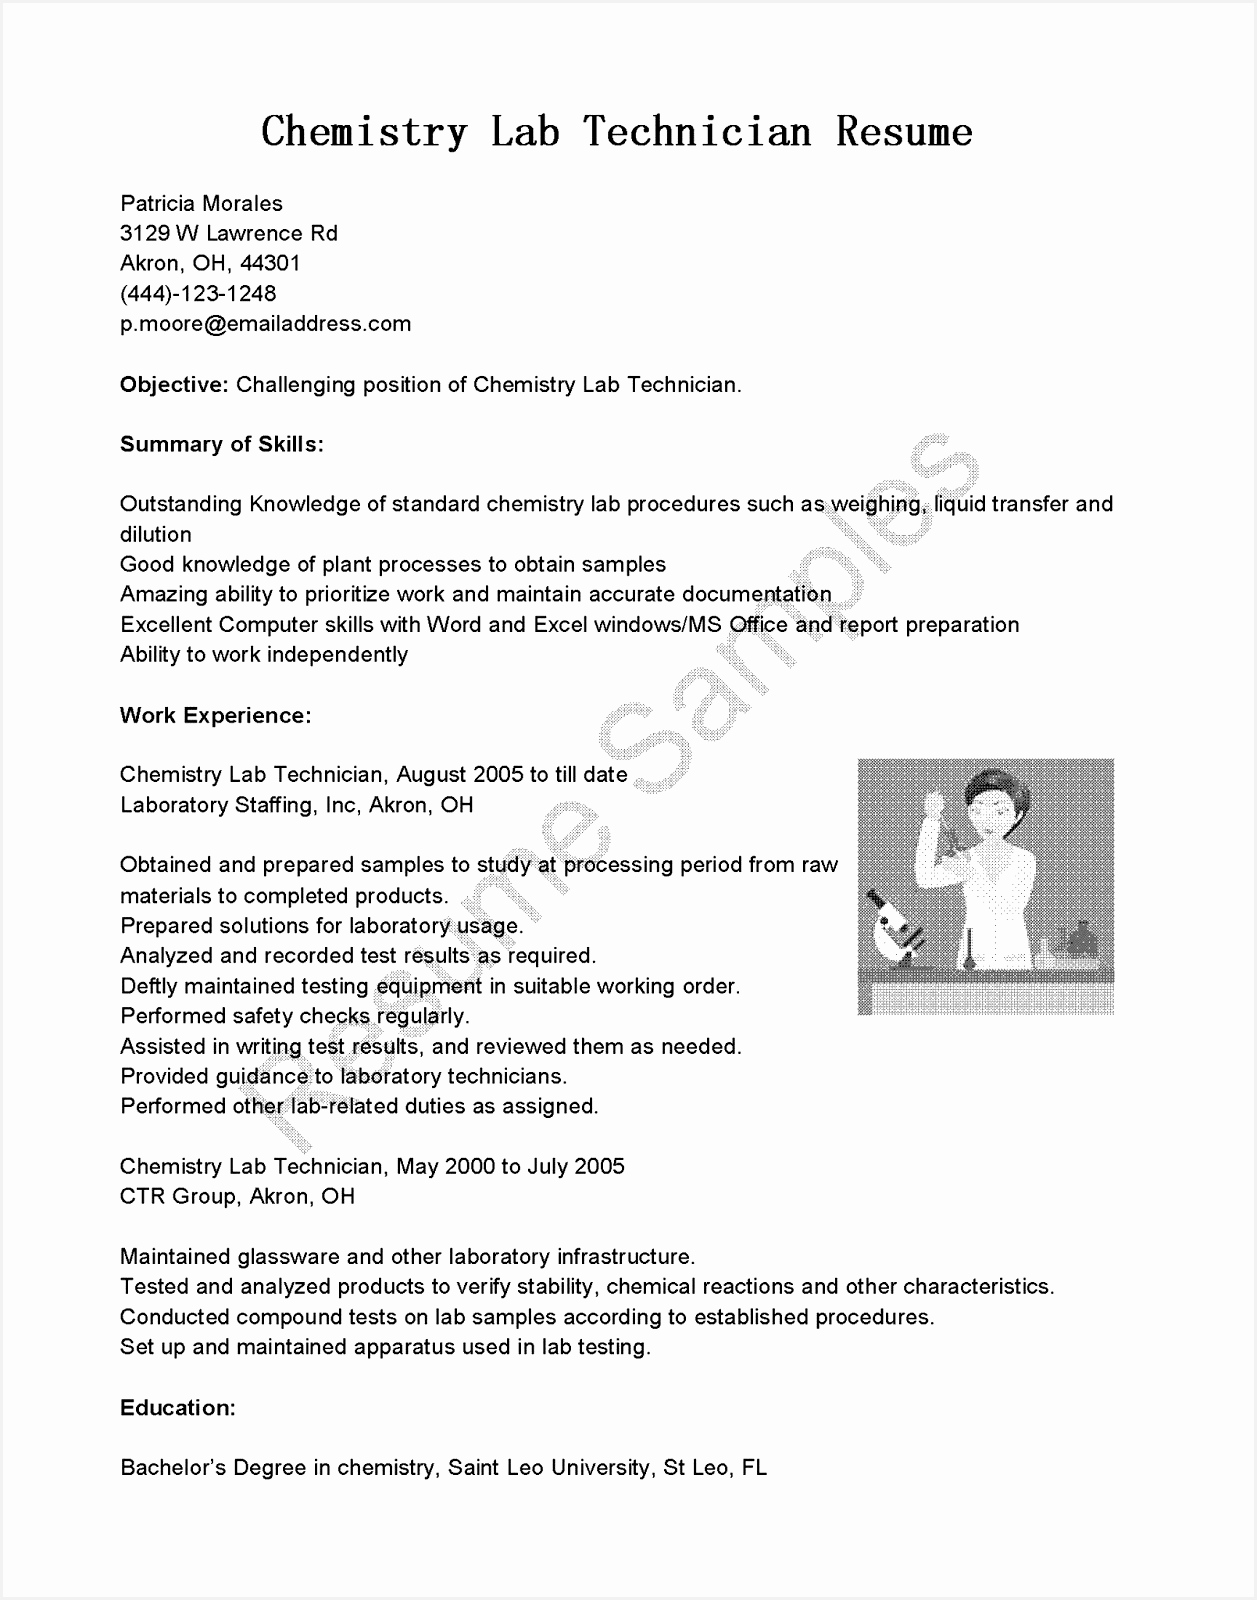 Tech Resume Template Valid Pharmacy Tech Resume Template Fresh Obama Resume 0d16001257